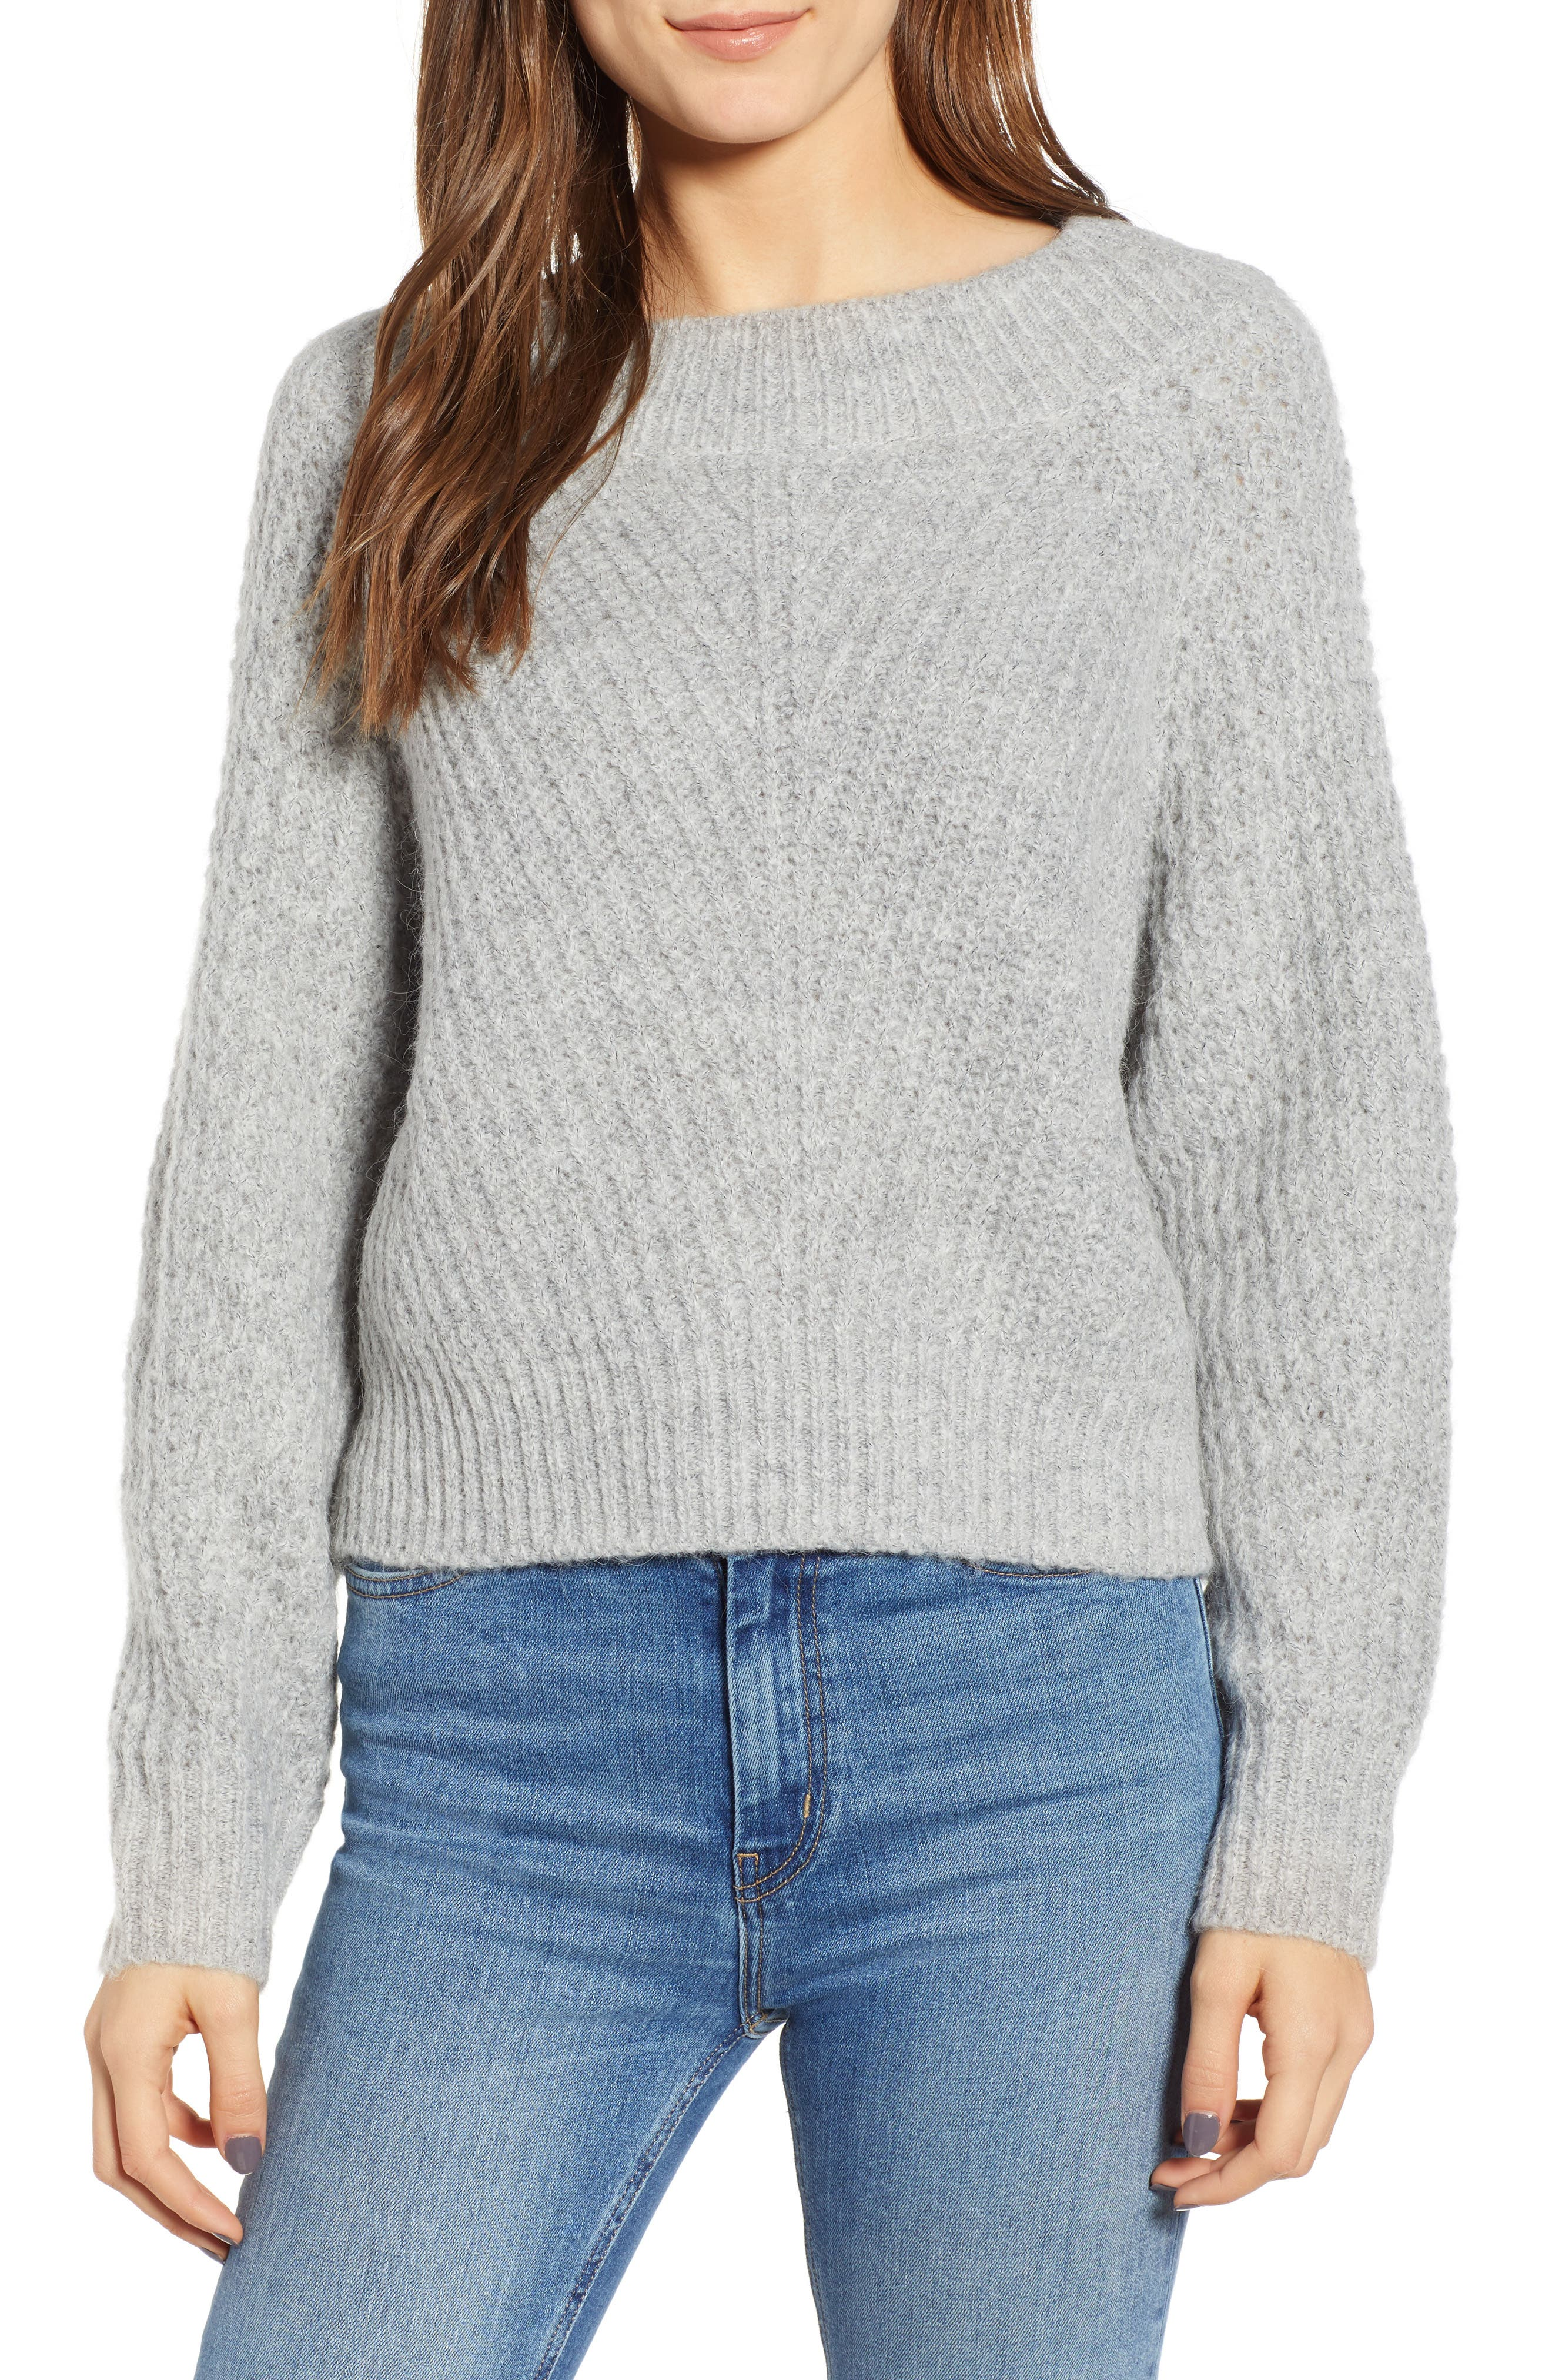 Chunky Crewneck Pullover Sweater,                         Main,                         color, GREY PEARL HEATHER